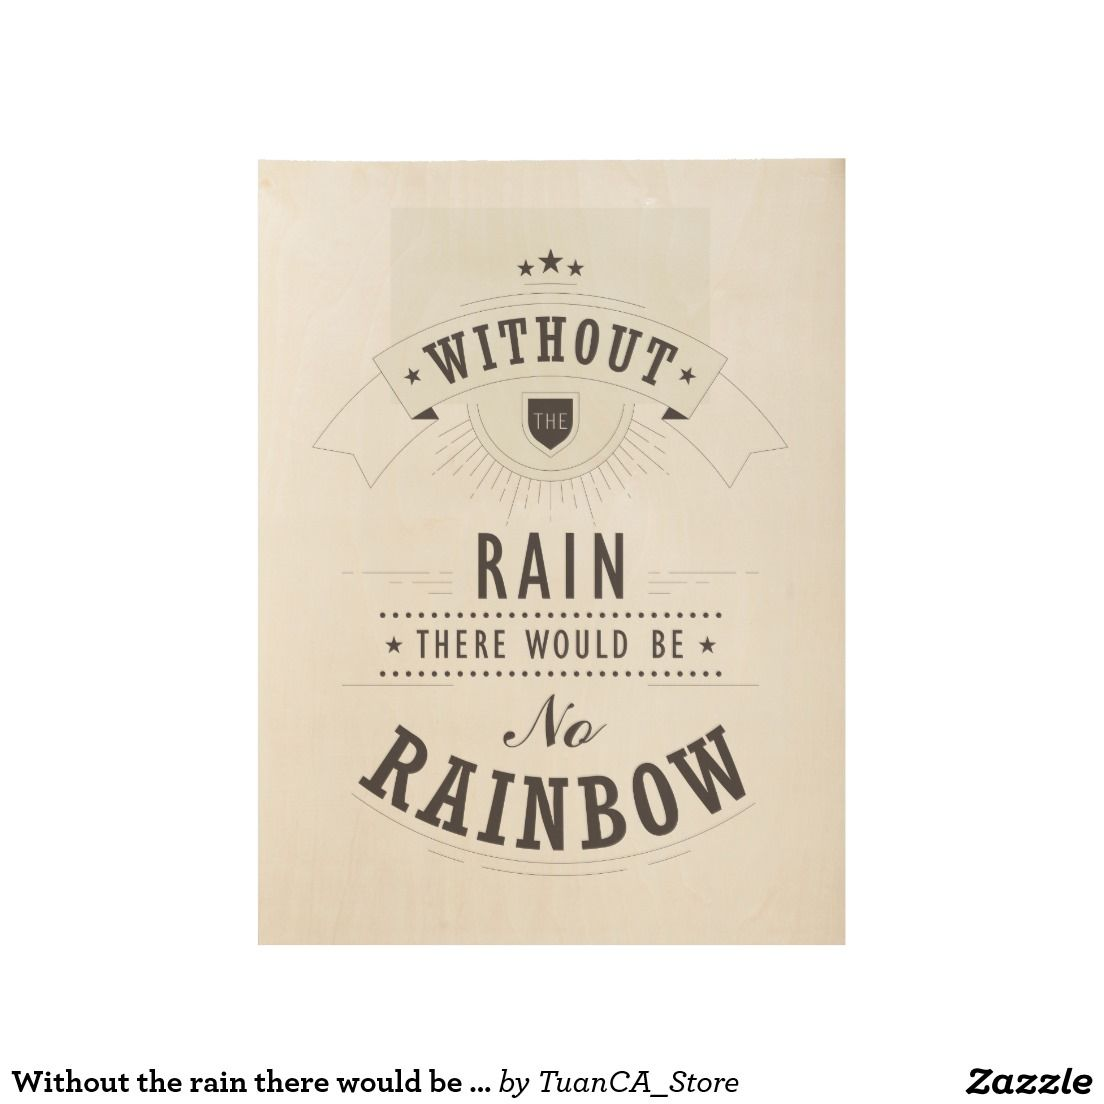 Without the rain there would be no rainbow poster